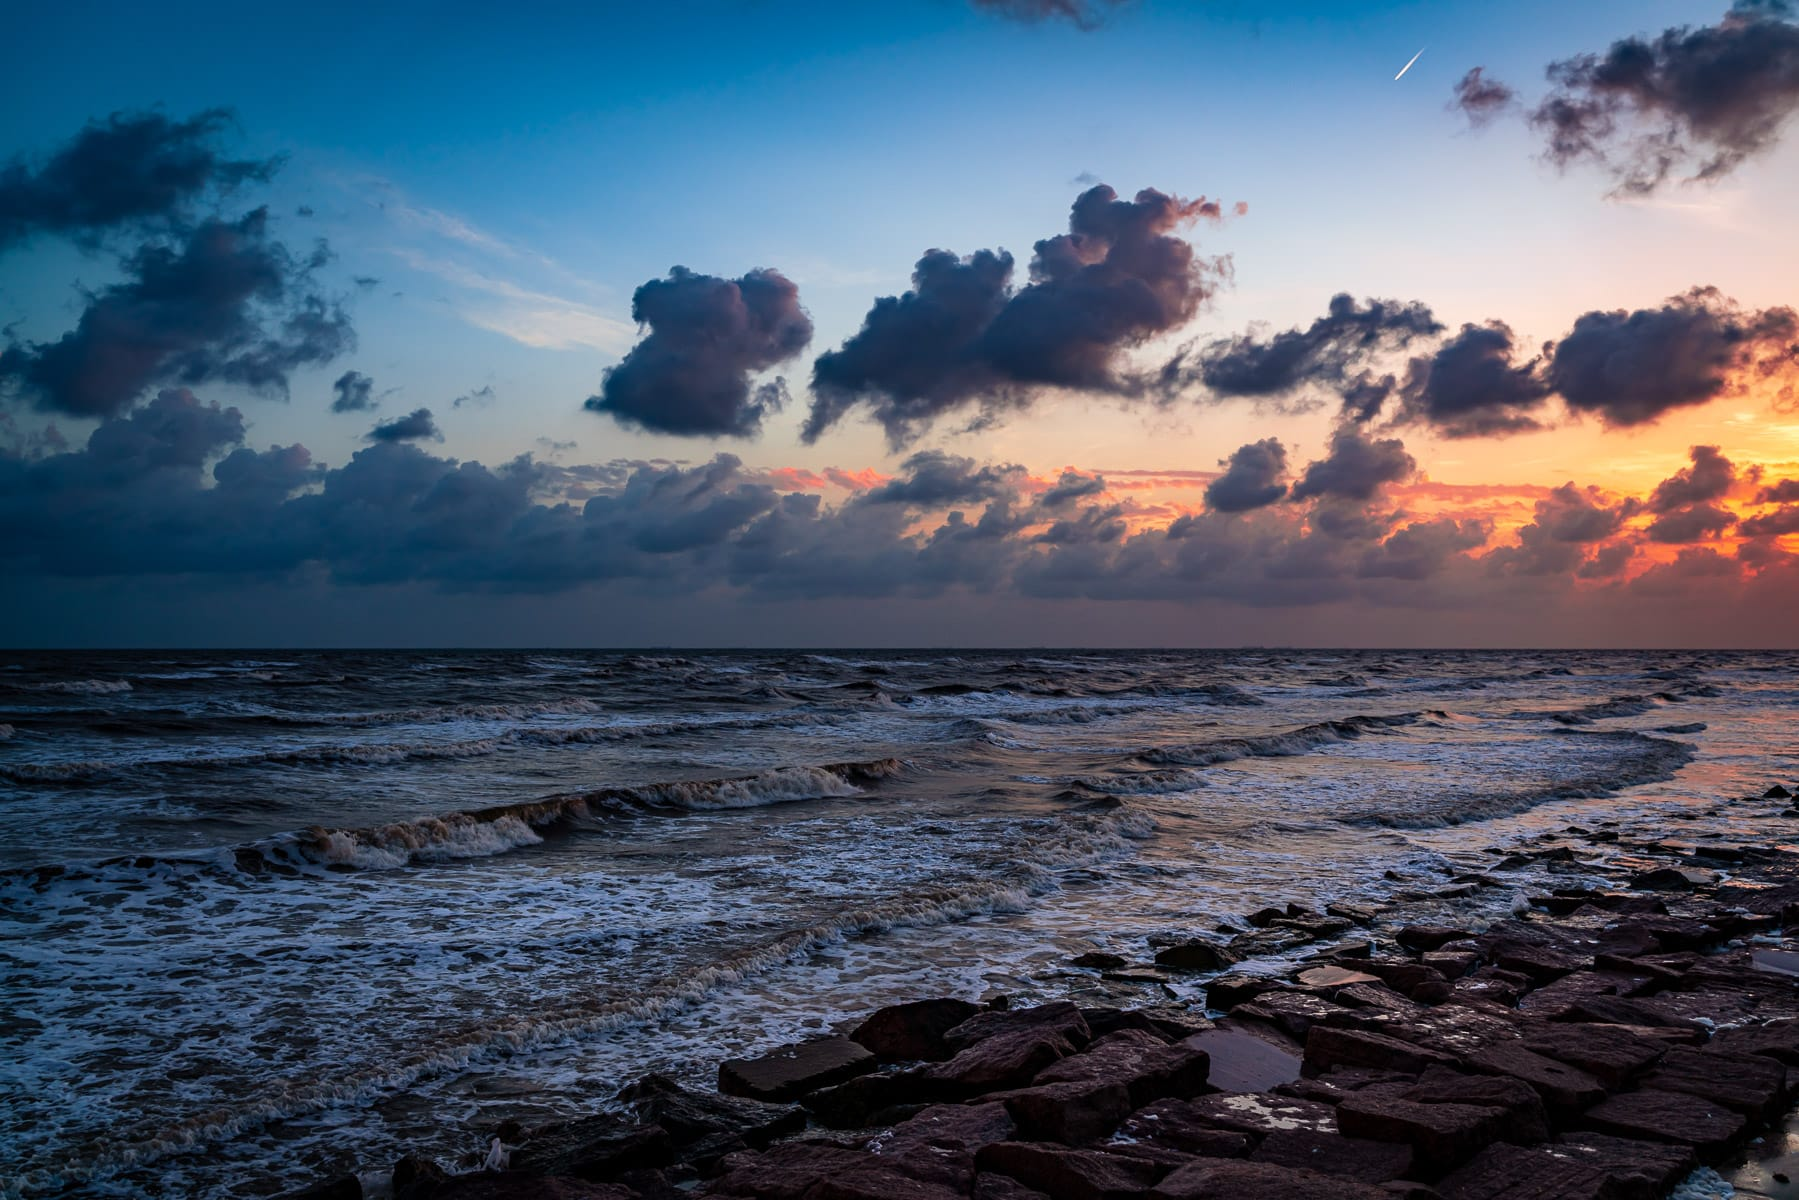 The sun rises on the Gulf of Mexico at Galveston, Texas.